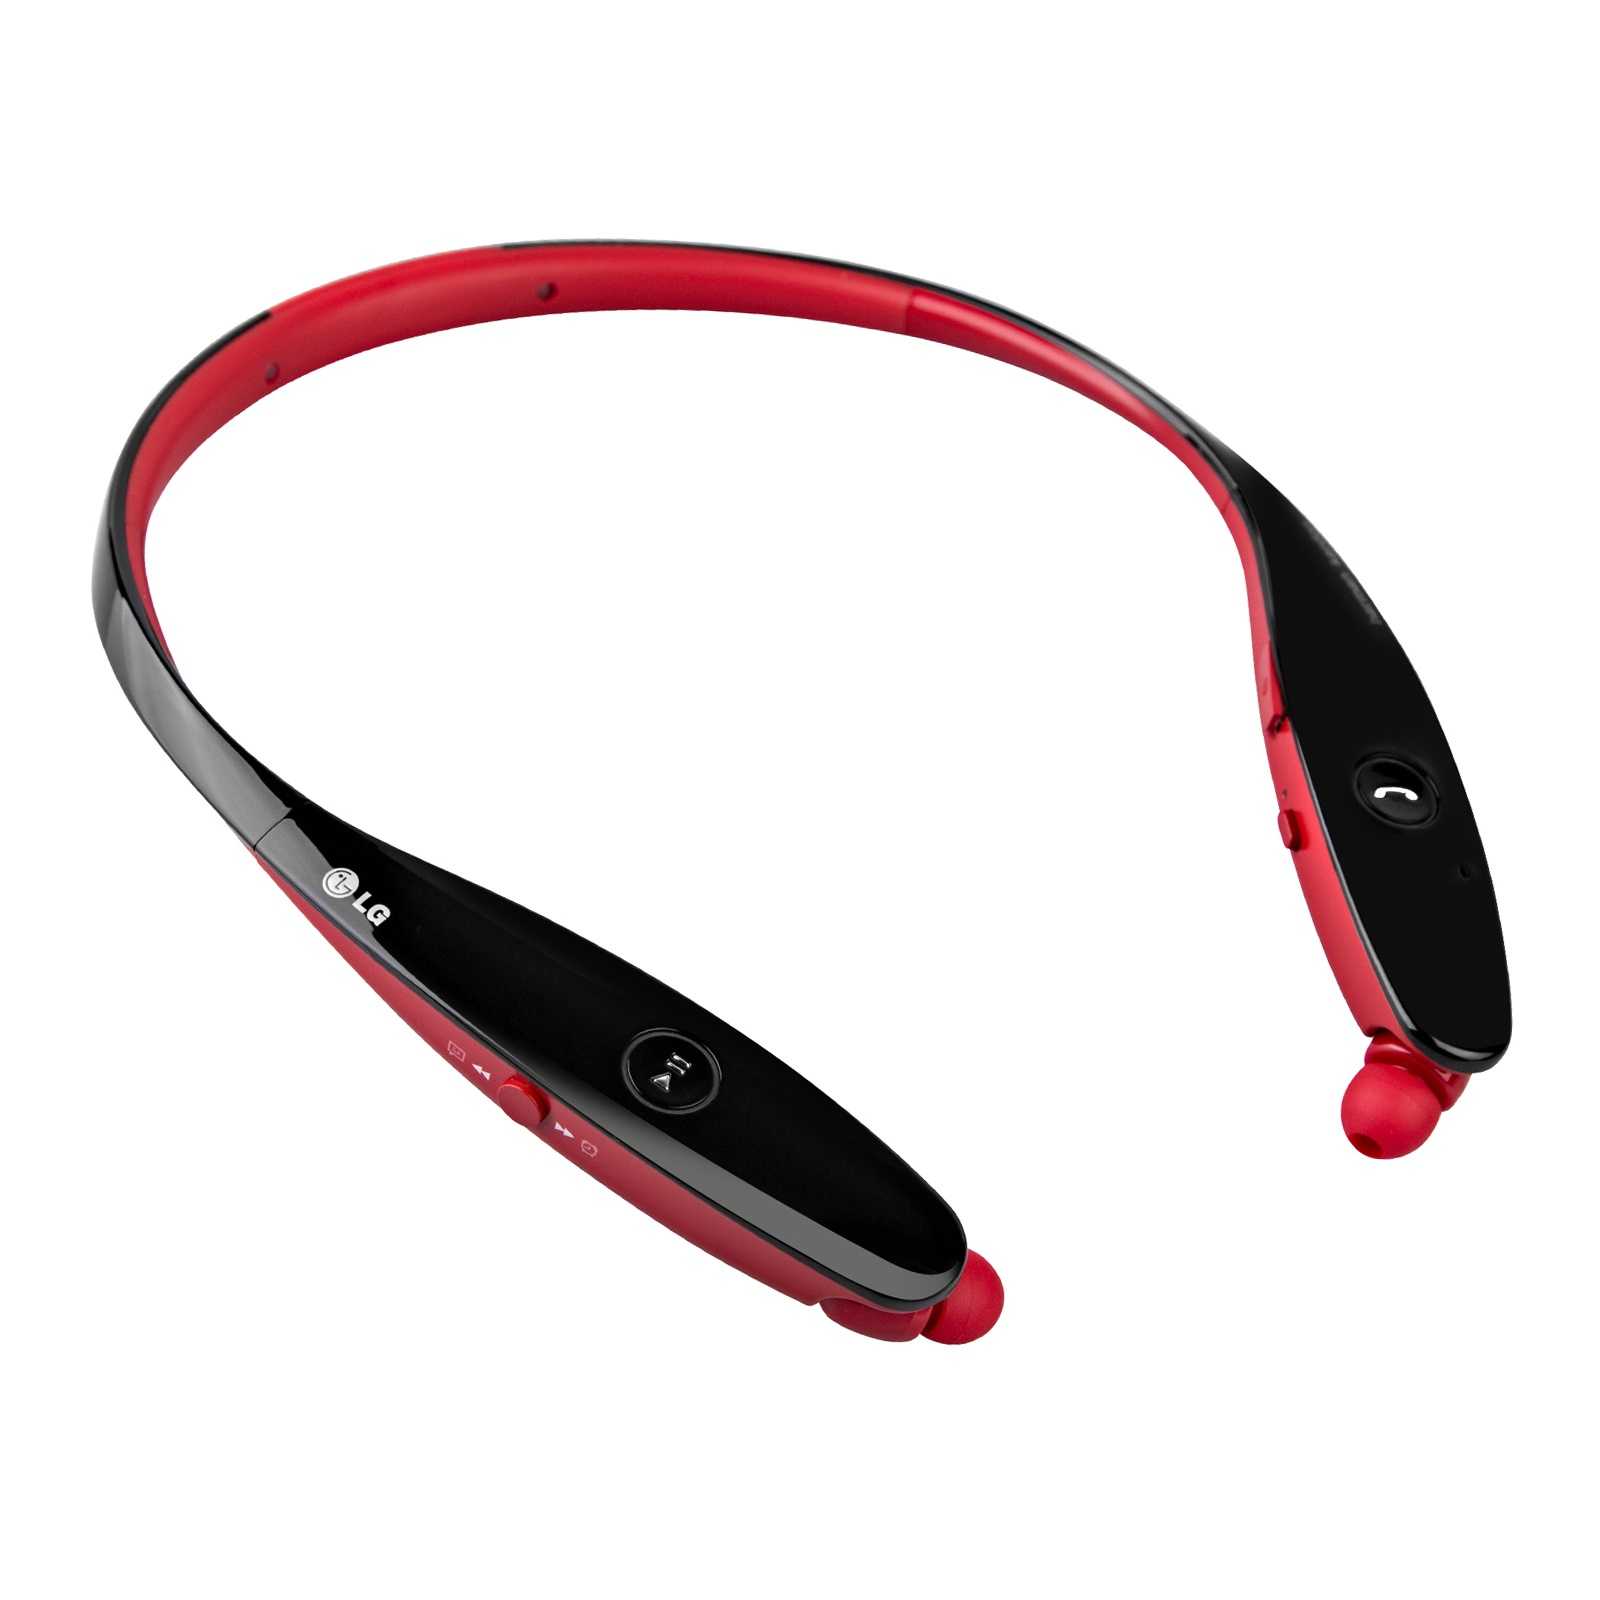 LG Tone HBS-900 Infinim Bluetooth Stereo Headset - Red Black (Certified Refurbished)